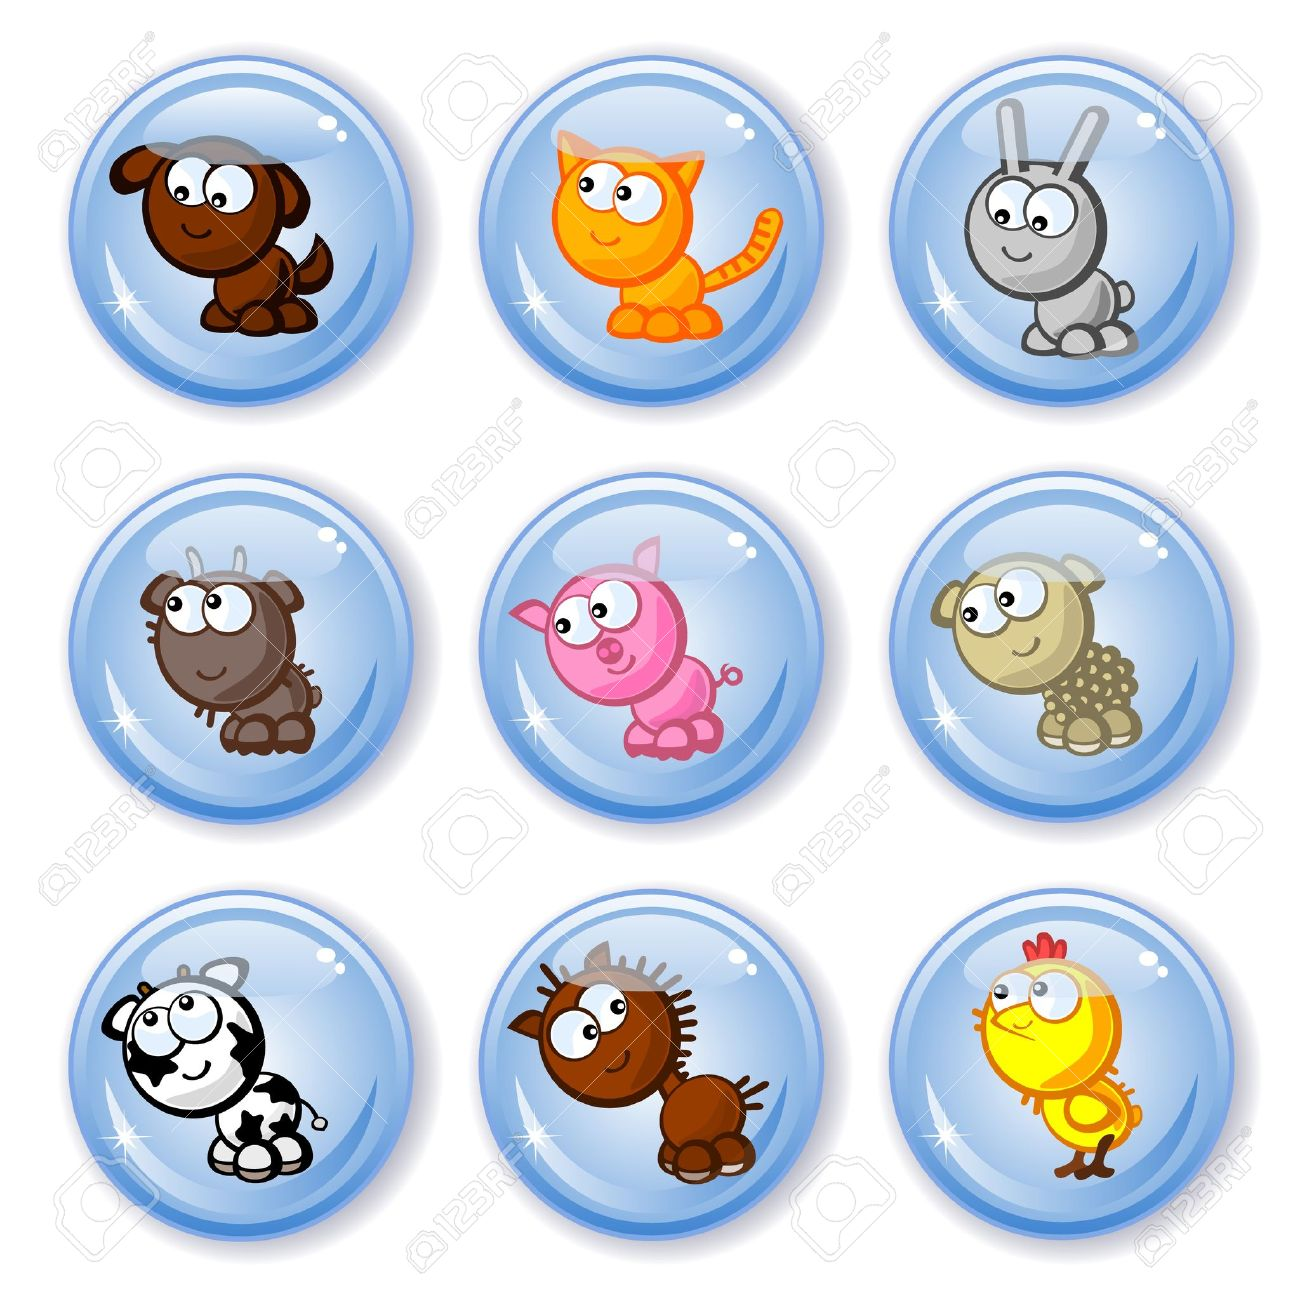 Set of vector buttons isolated. Cute farm animals. Children's comic style drawings. Stock Vector - 11012733